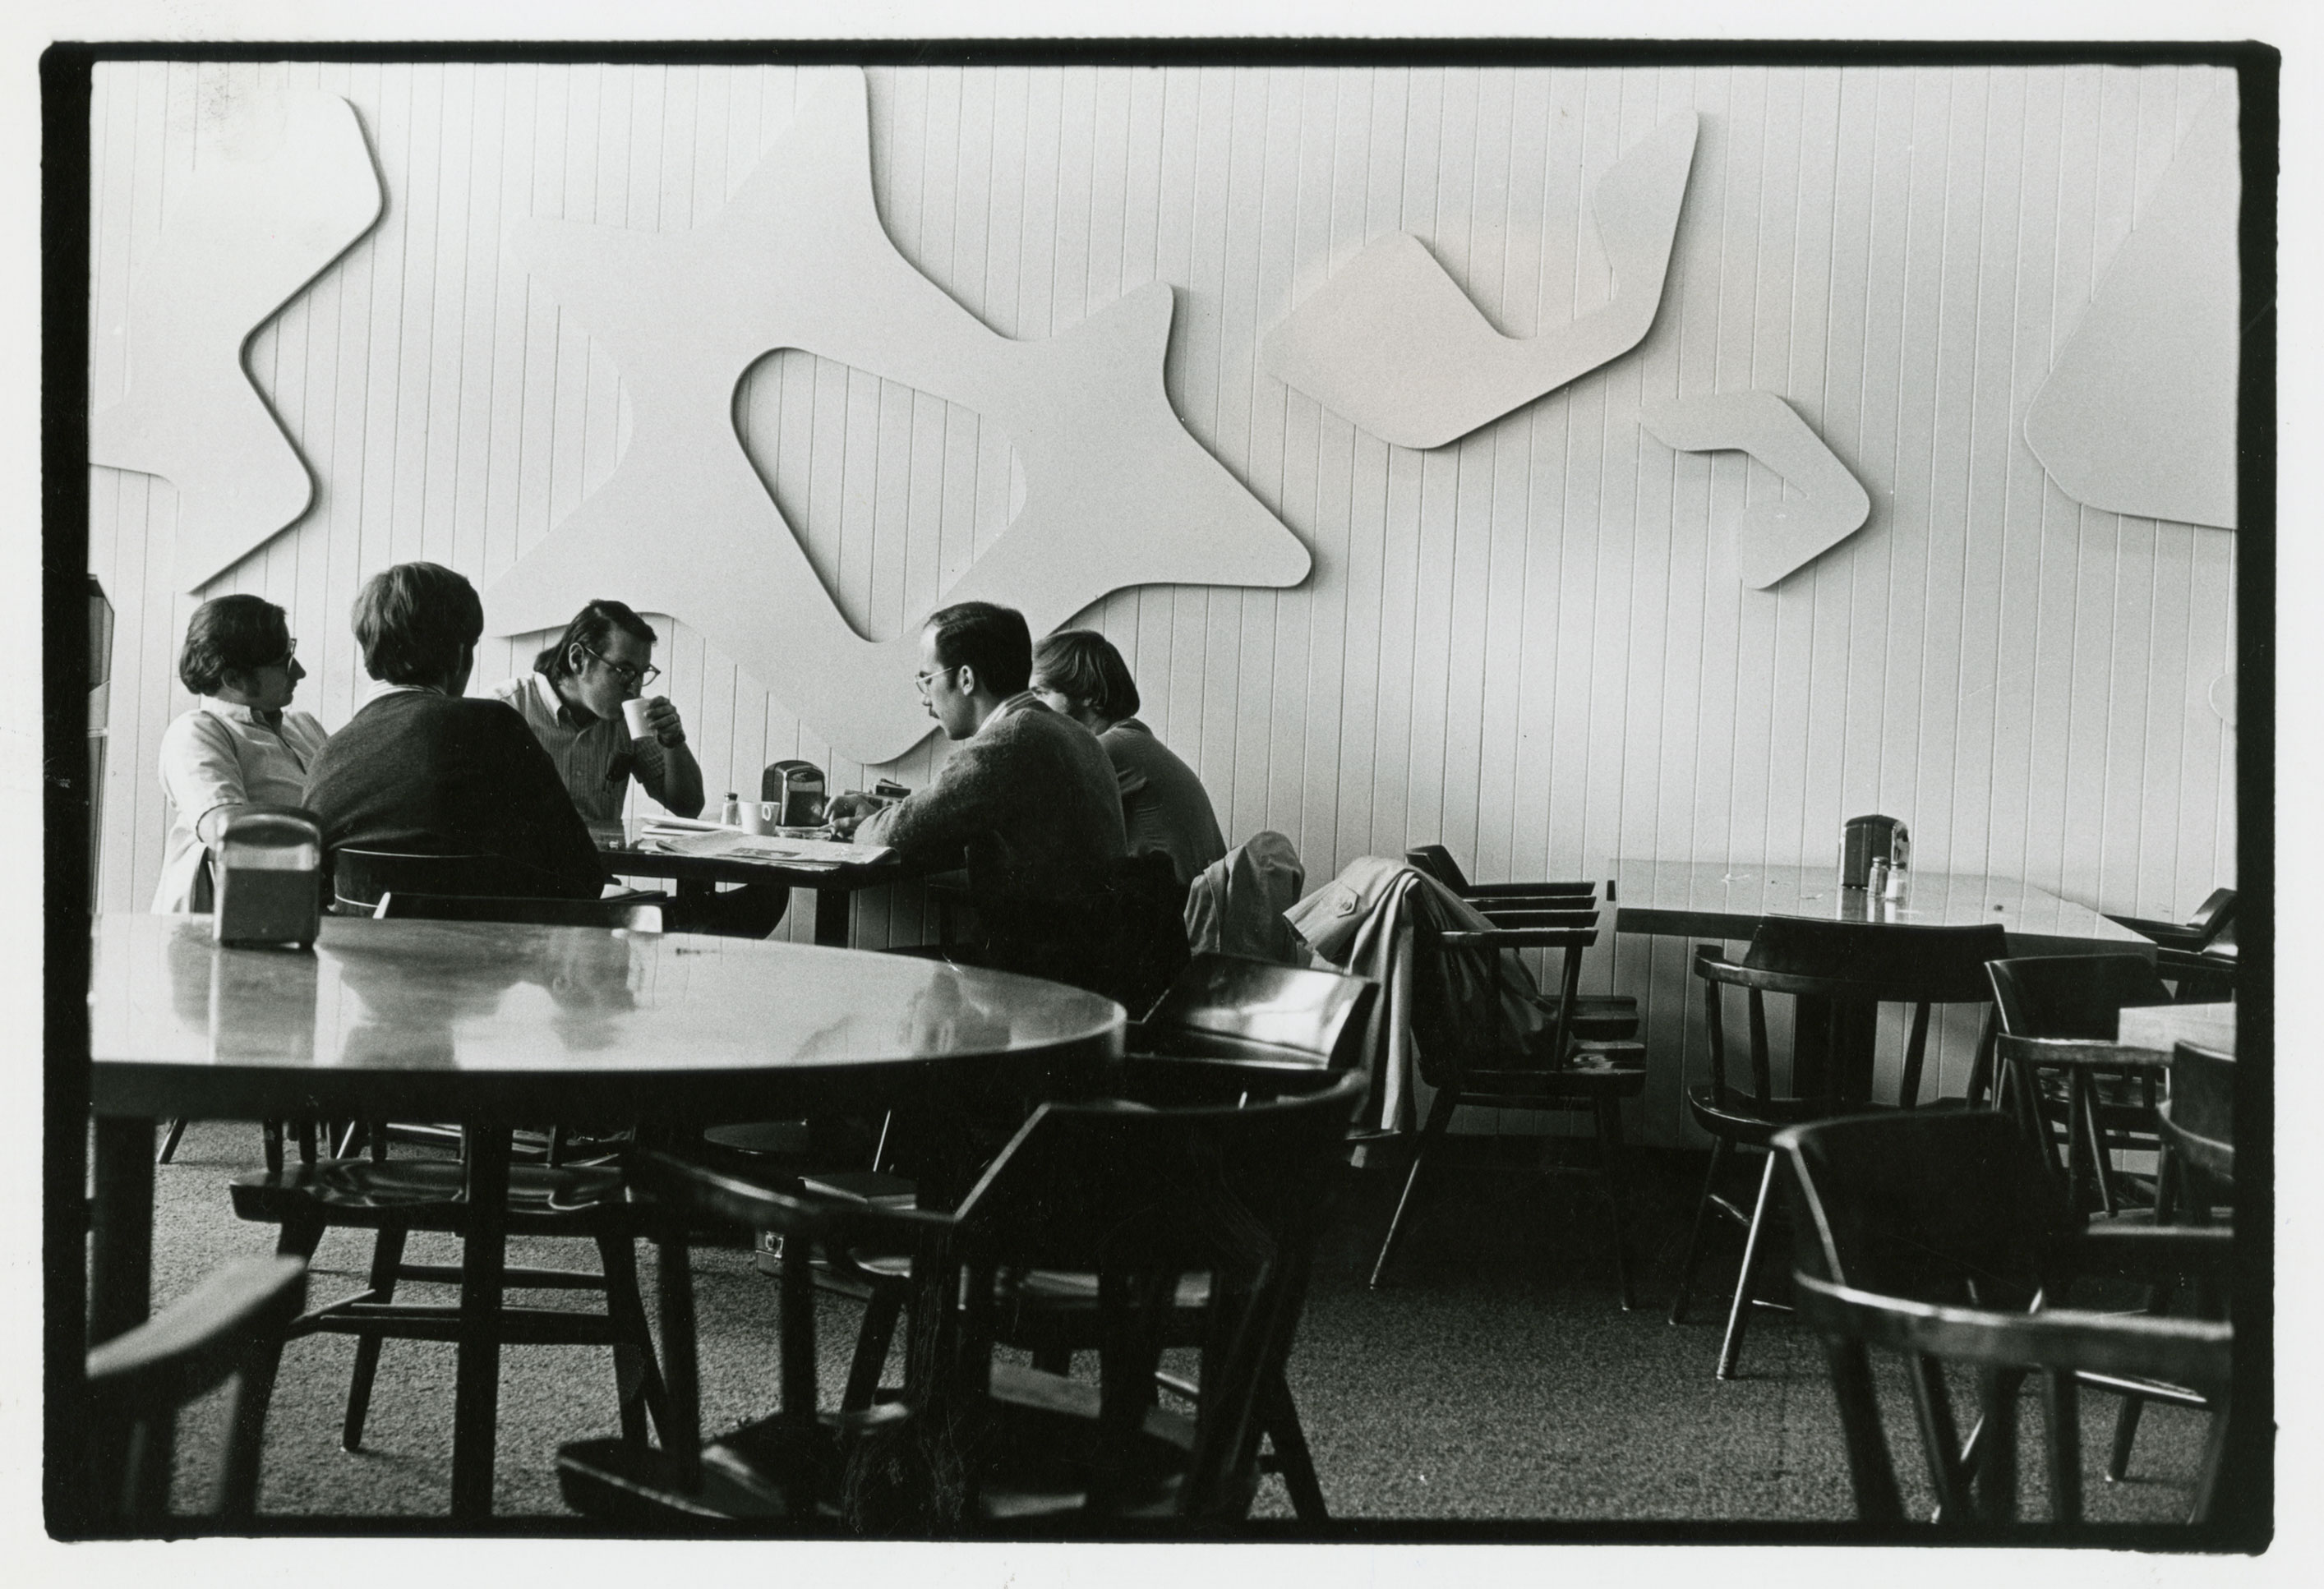 South wall of Constellations II, 1960s. Harvard Law School Buildings Collection, Special Collections, Harvard Law School Library, Harvard University. Note that both the panels and the supporting wall have been painted.